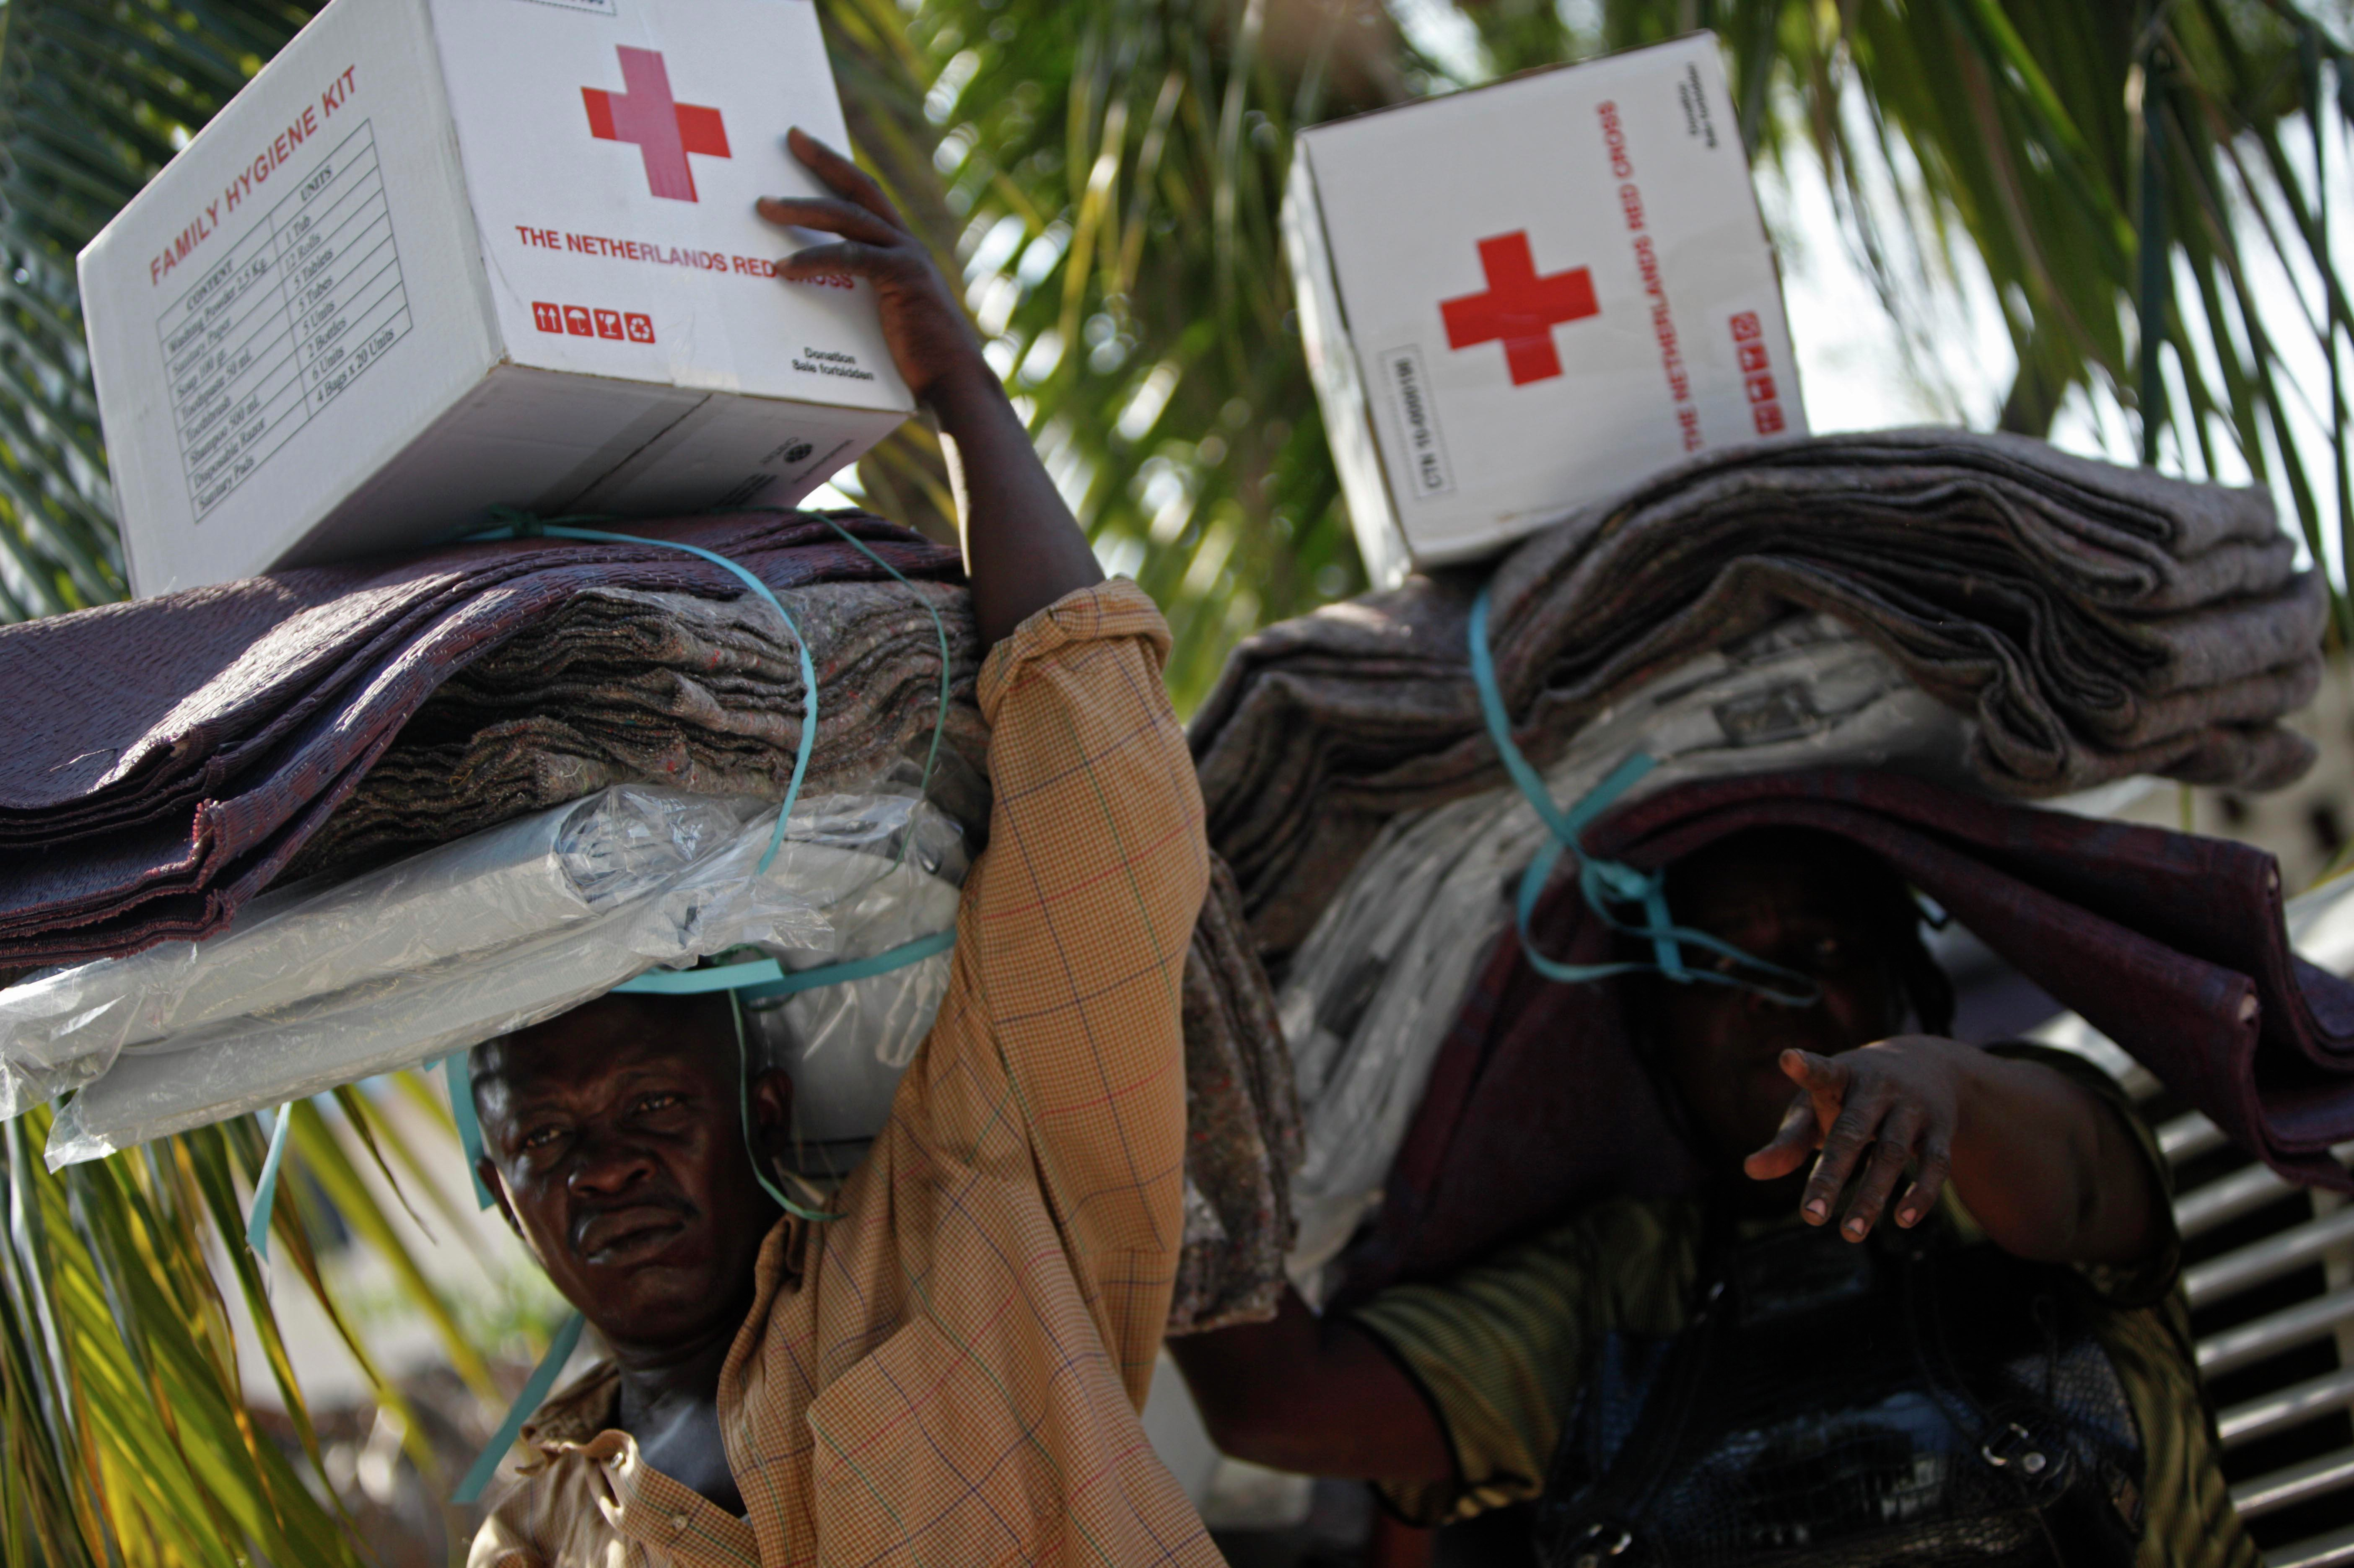 The problem of The American Red Cross' missing money is a cycle of overhead, says Jonathan Katz, an Associated Press reporter who tracked post-disaster spending in Haiti. It was always going to be the American Red Cross taking a 9 percent cut, re-granting to another group, which would take out their cut.